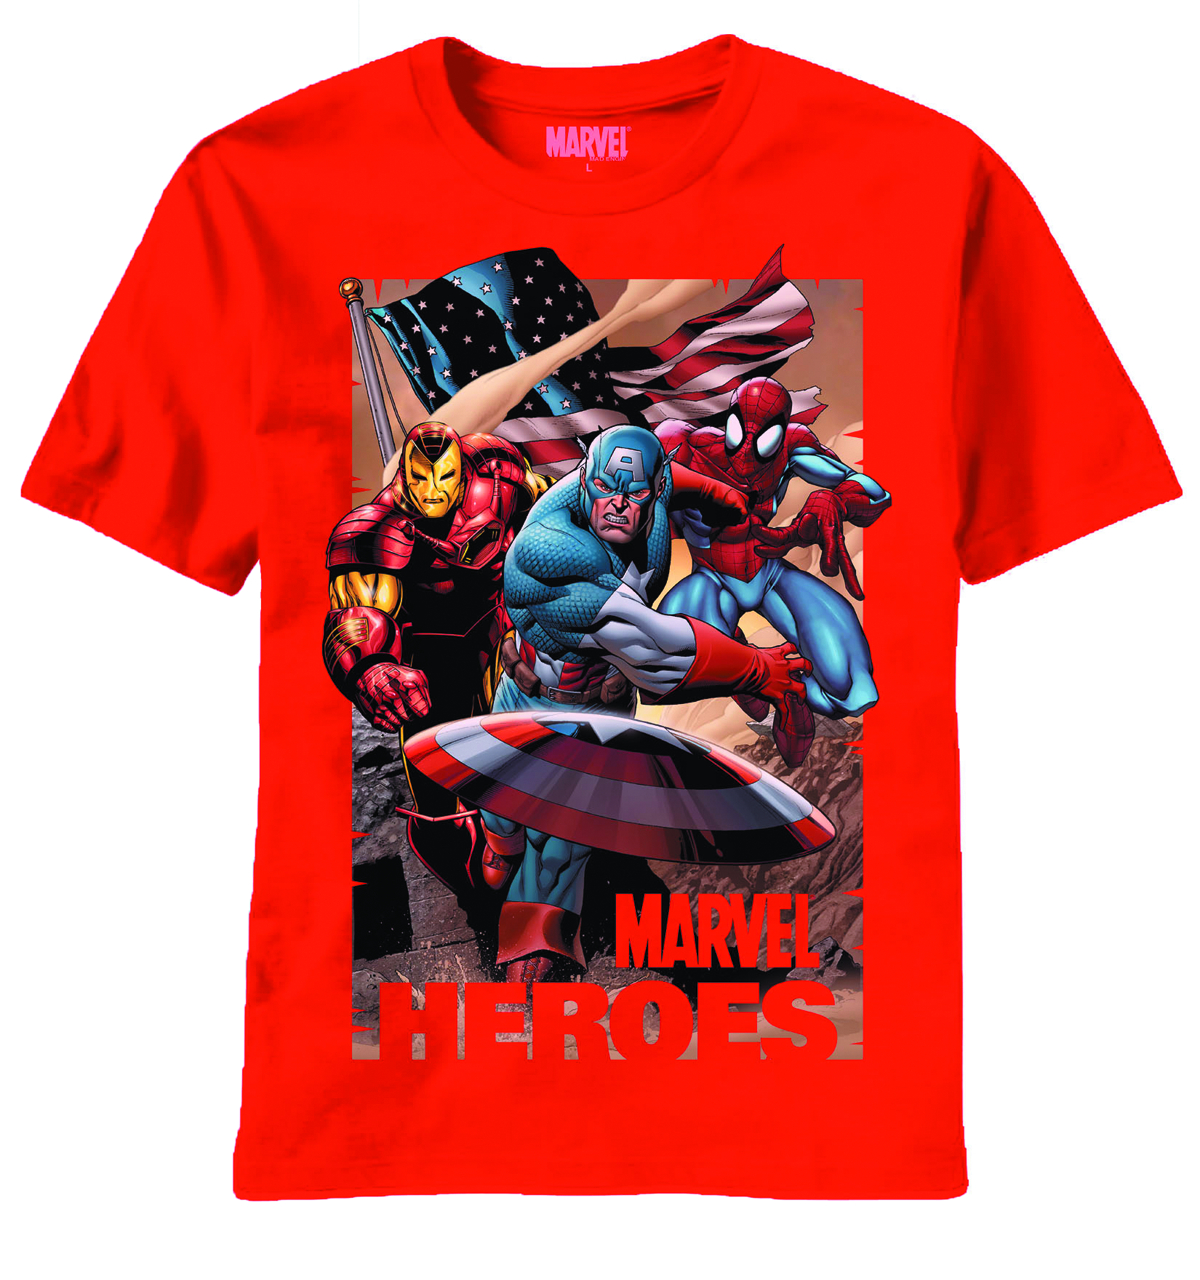 MARVEL HEROES TRES AMERICANOS RED T/S MED